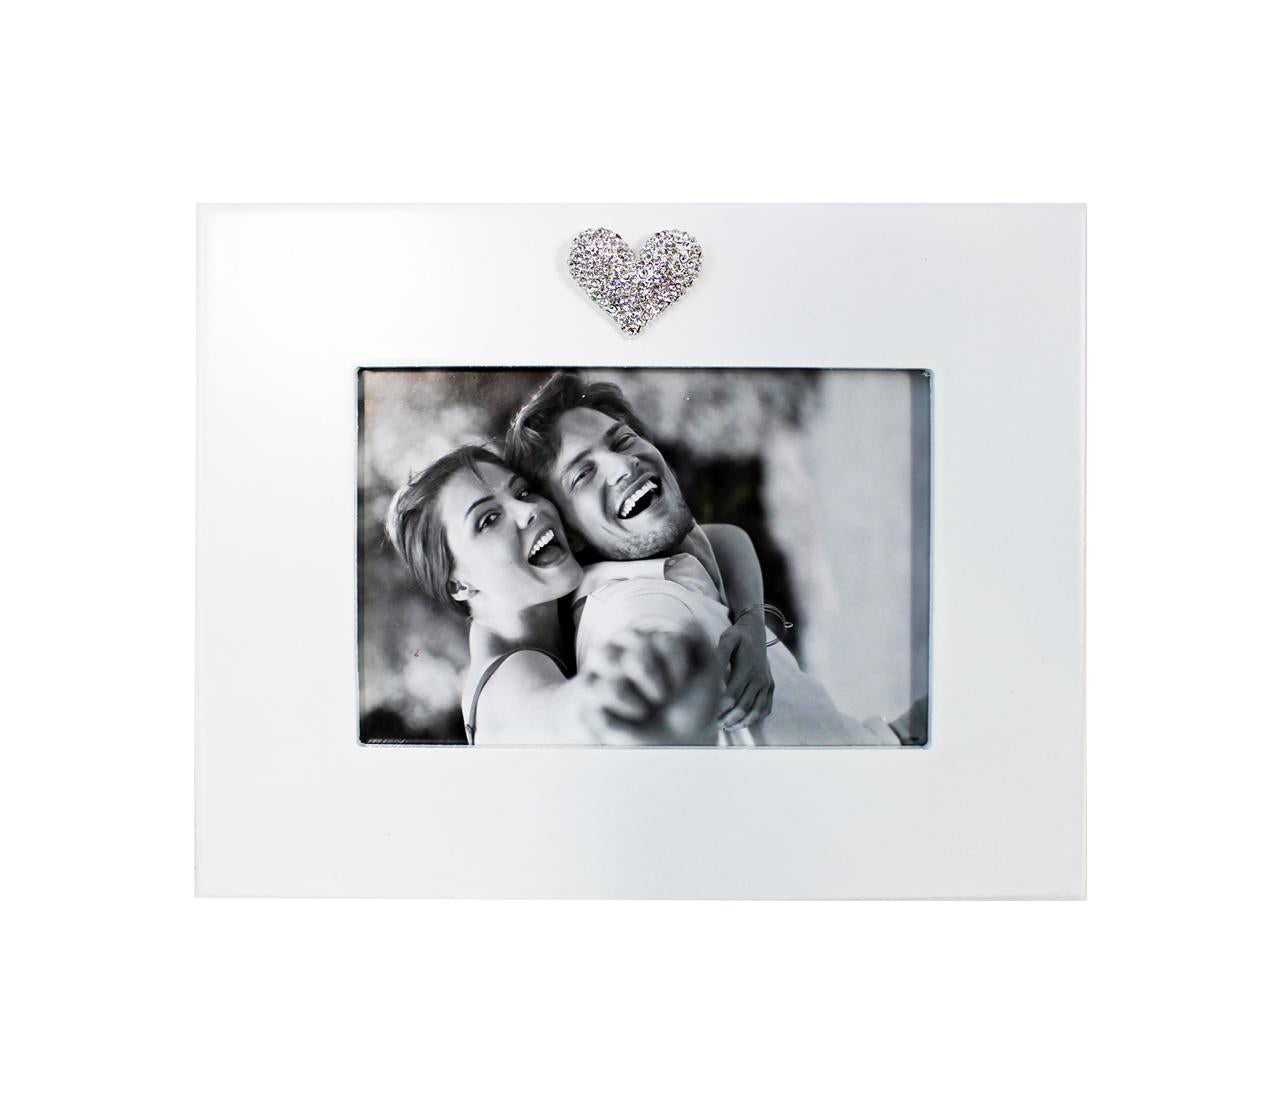 Wooden frame with Rhinestone Heart